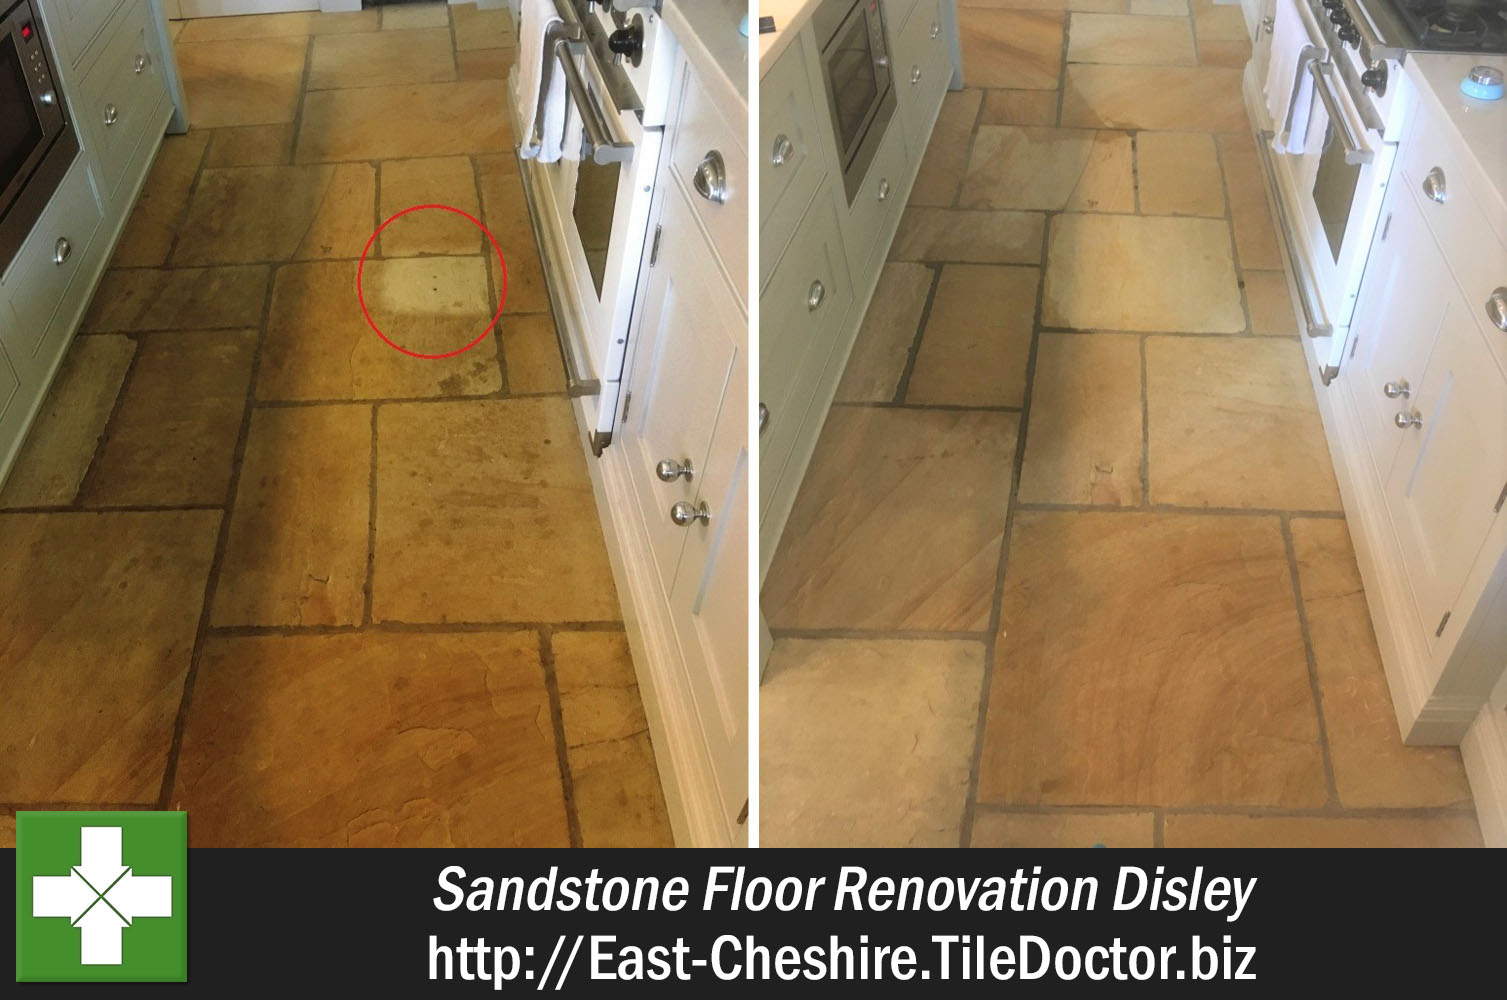 Renovating a large Sandstone Floor in Disley